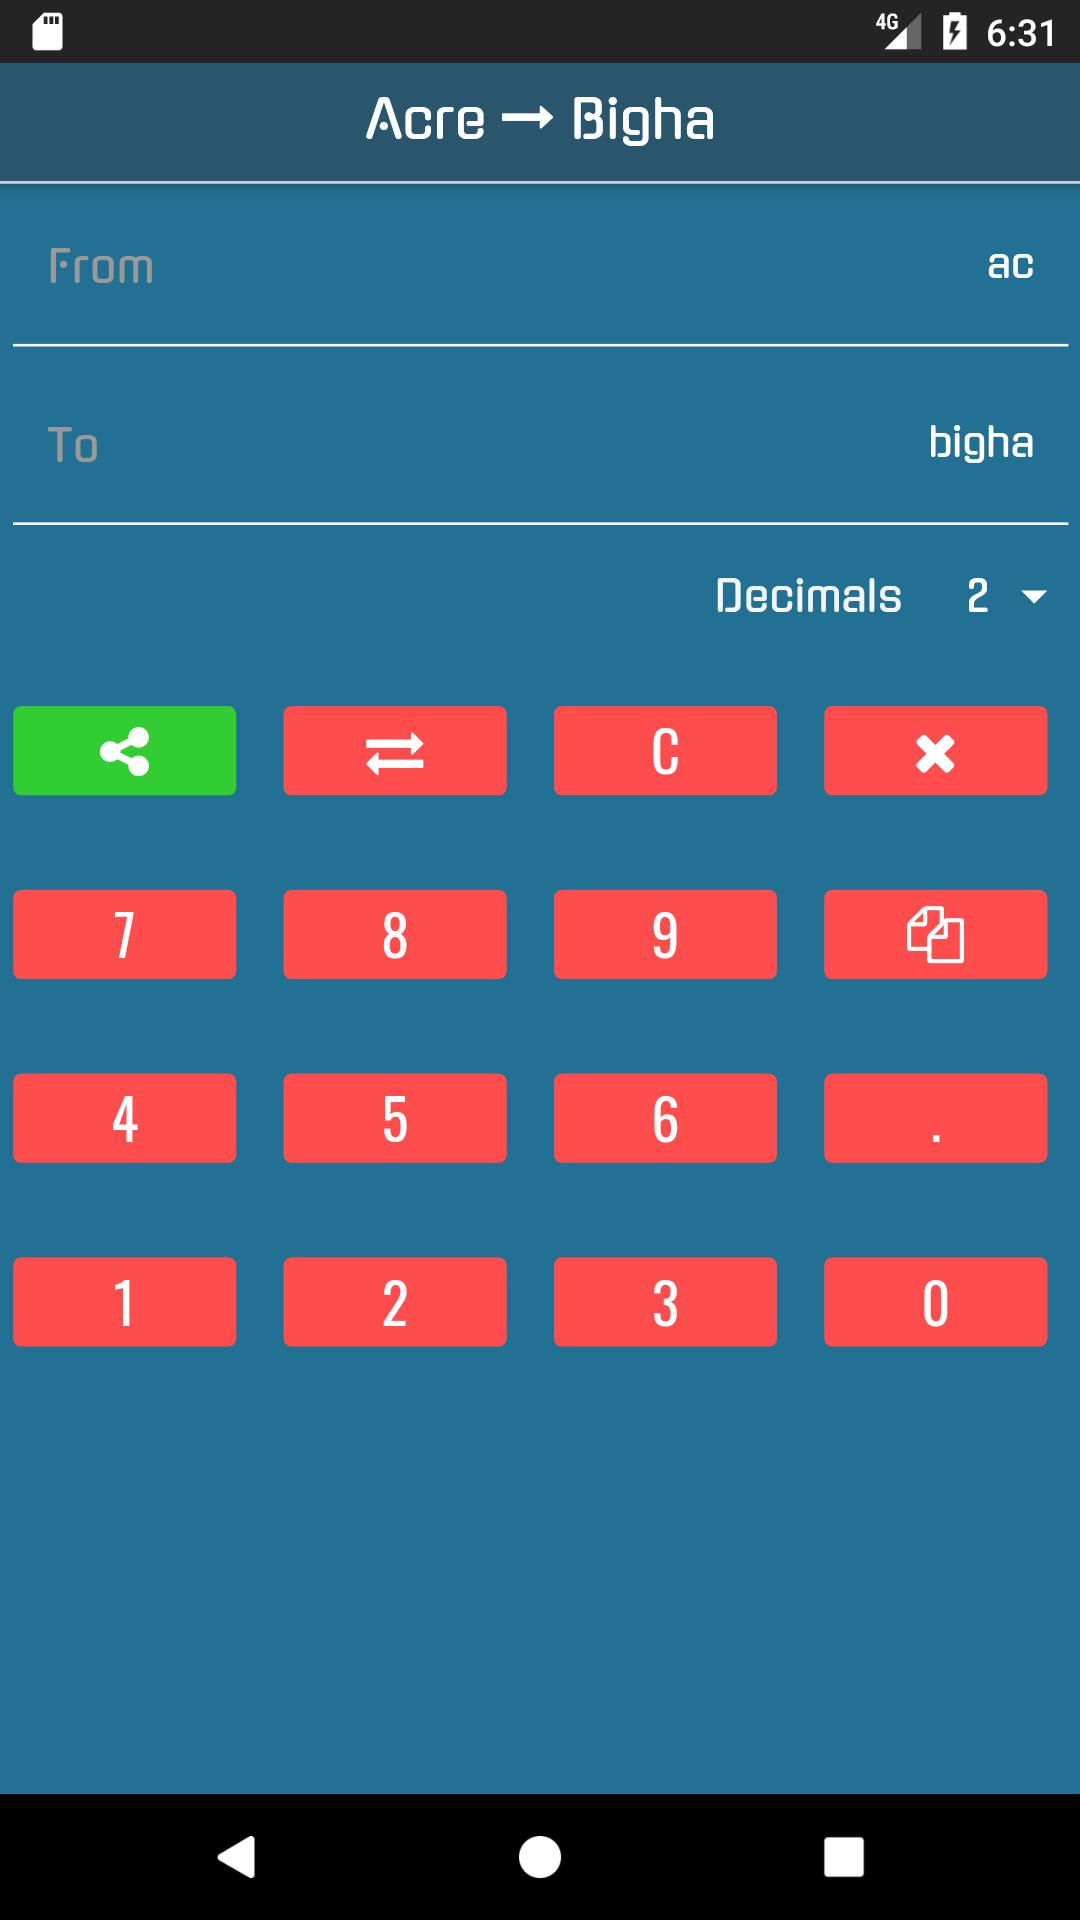 Acre to Bigha Converter for Android - APK Download